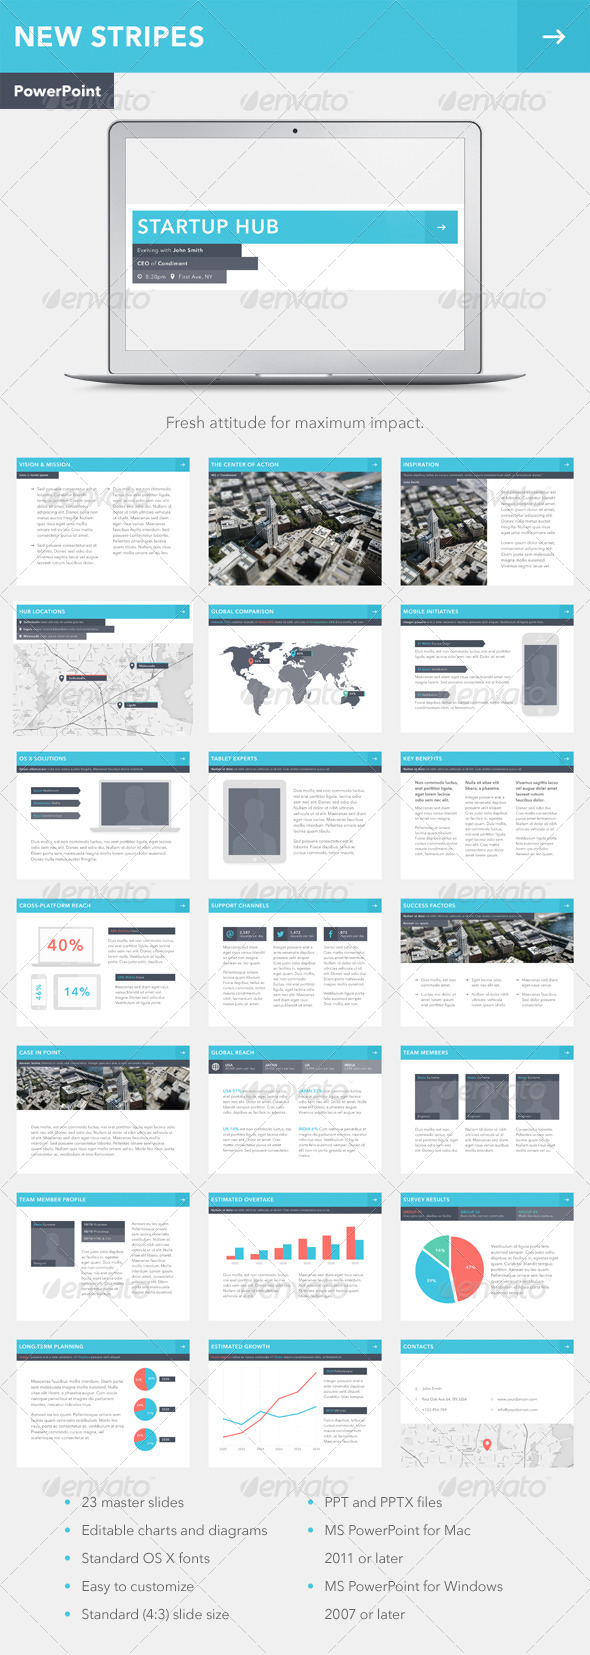 GraphicRiver New Stripes PowerPoint Template 7789560